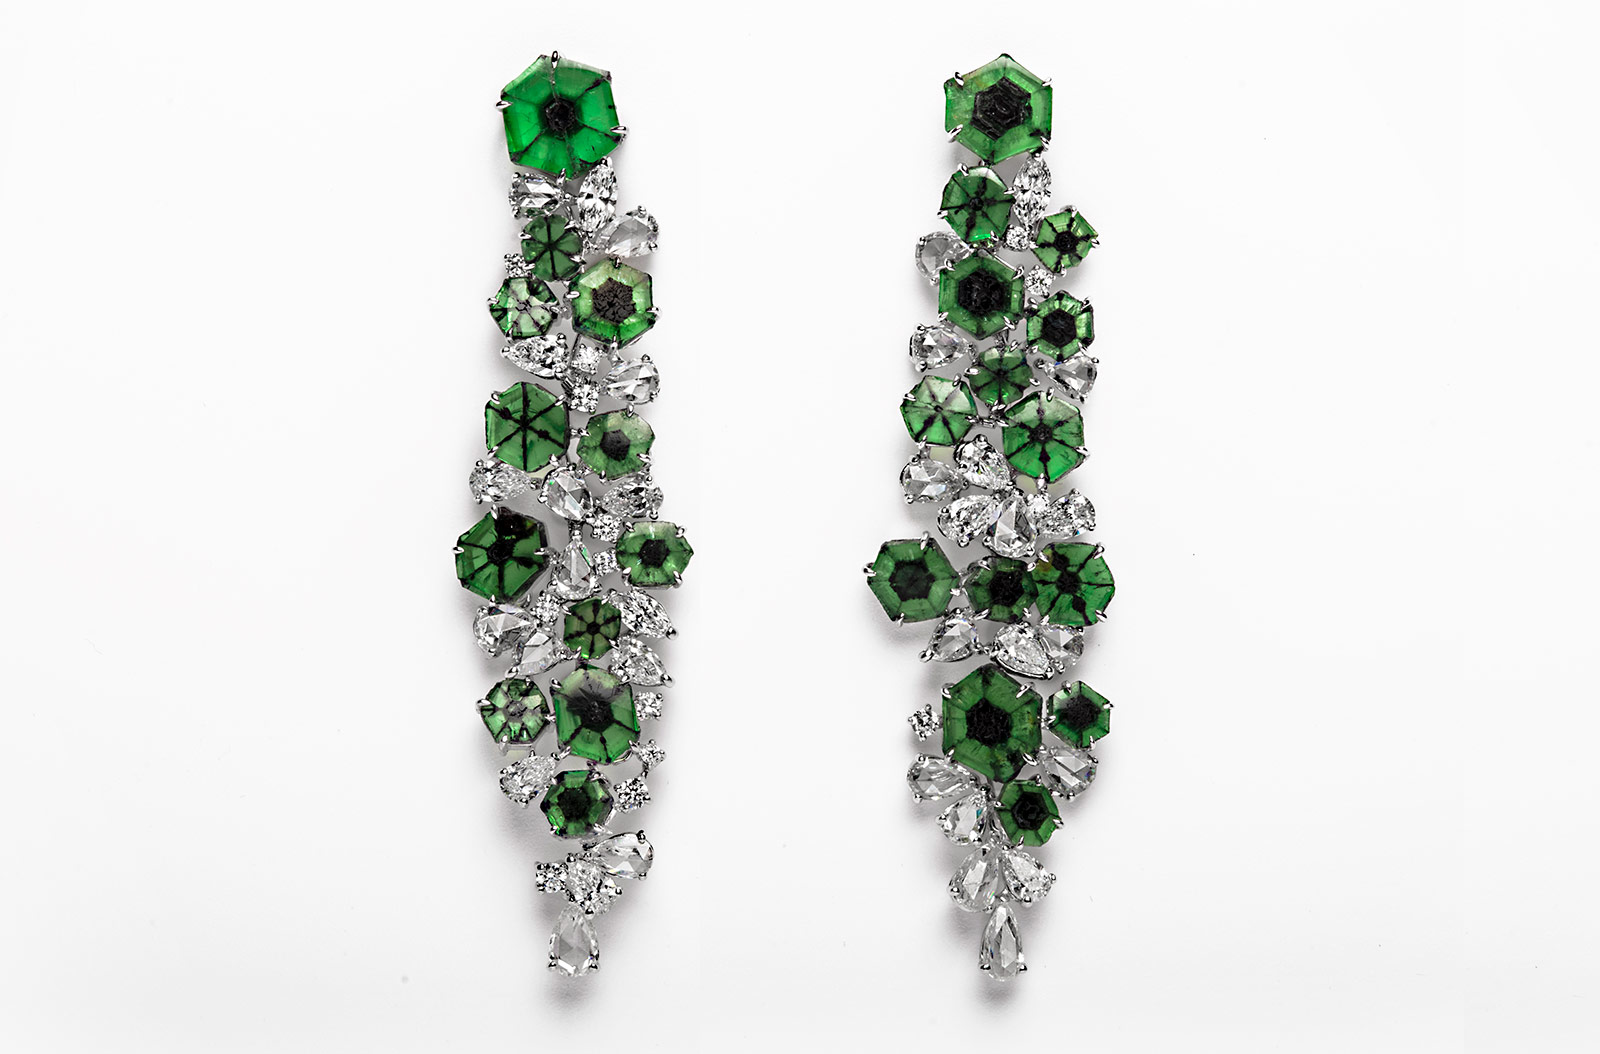 Qiu Fine Jewellery earrings from the 'Shanghai/Shanghai' collection with 21.21ct of trapiche emeralds and rose, marquise and pear cut diamonds